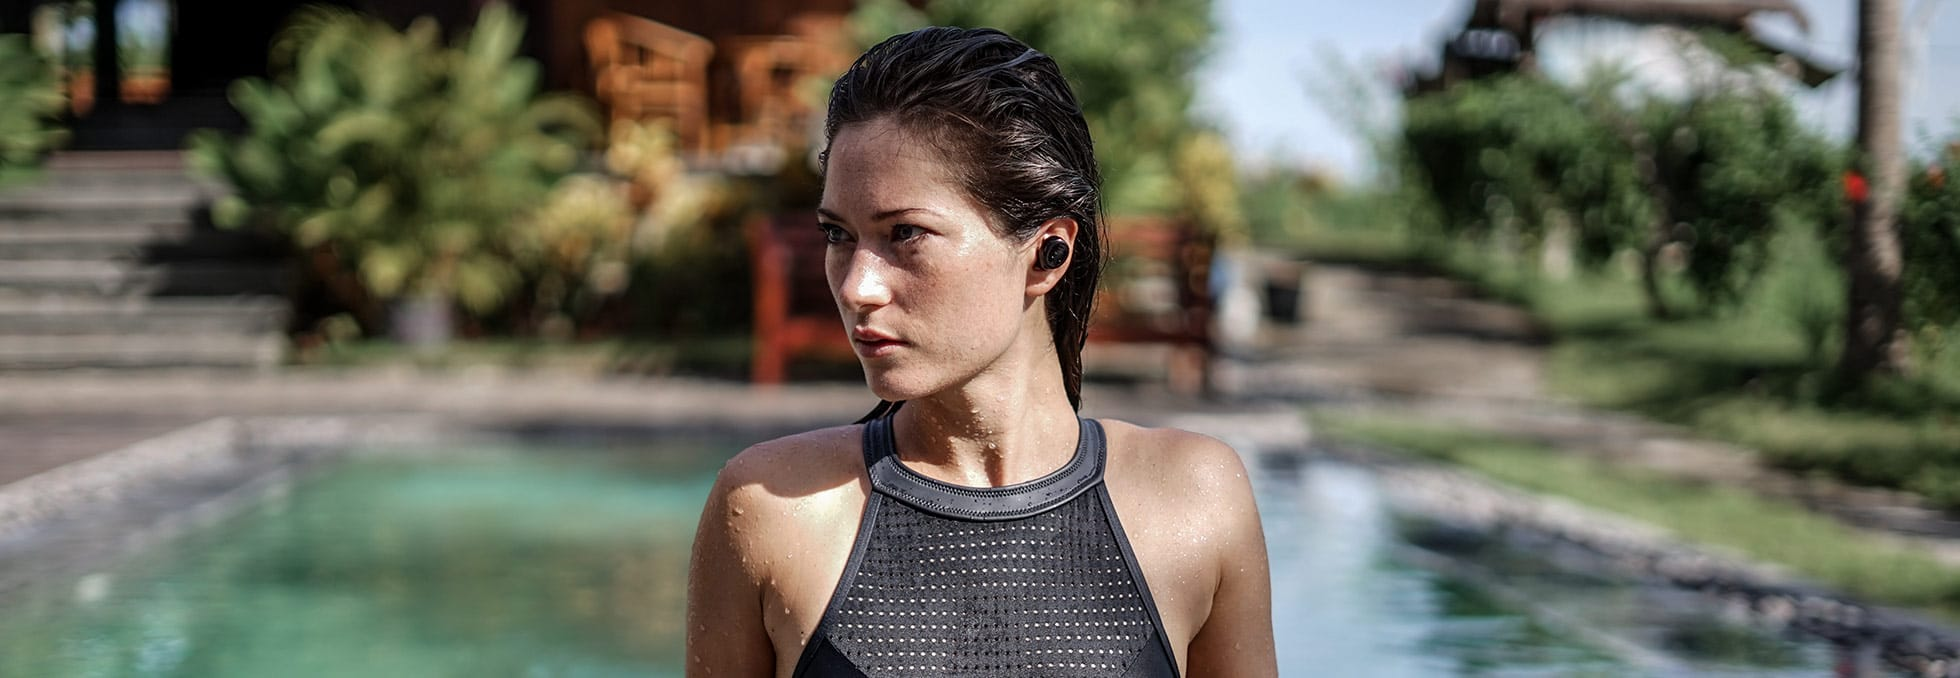 bragi dash pro fits a computer in your ear 2 - Bragi Dash Pro fits a computer in your ear